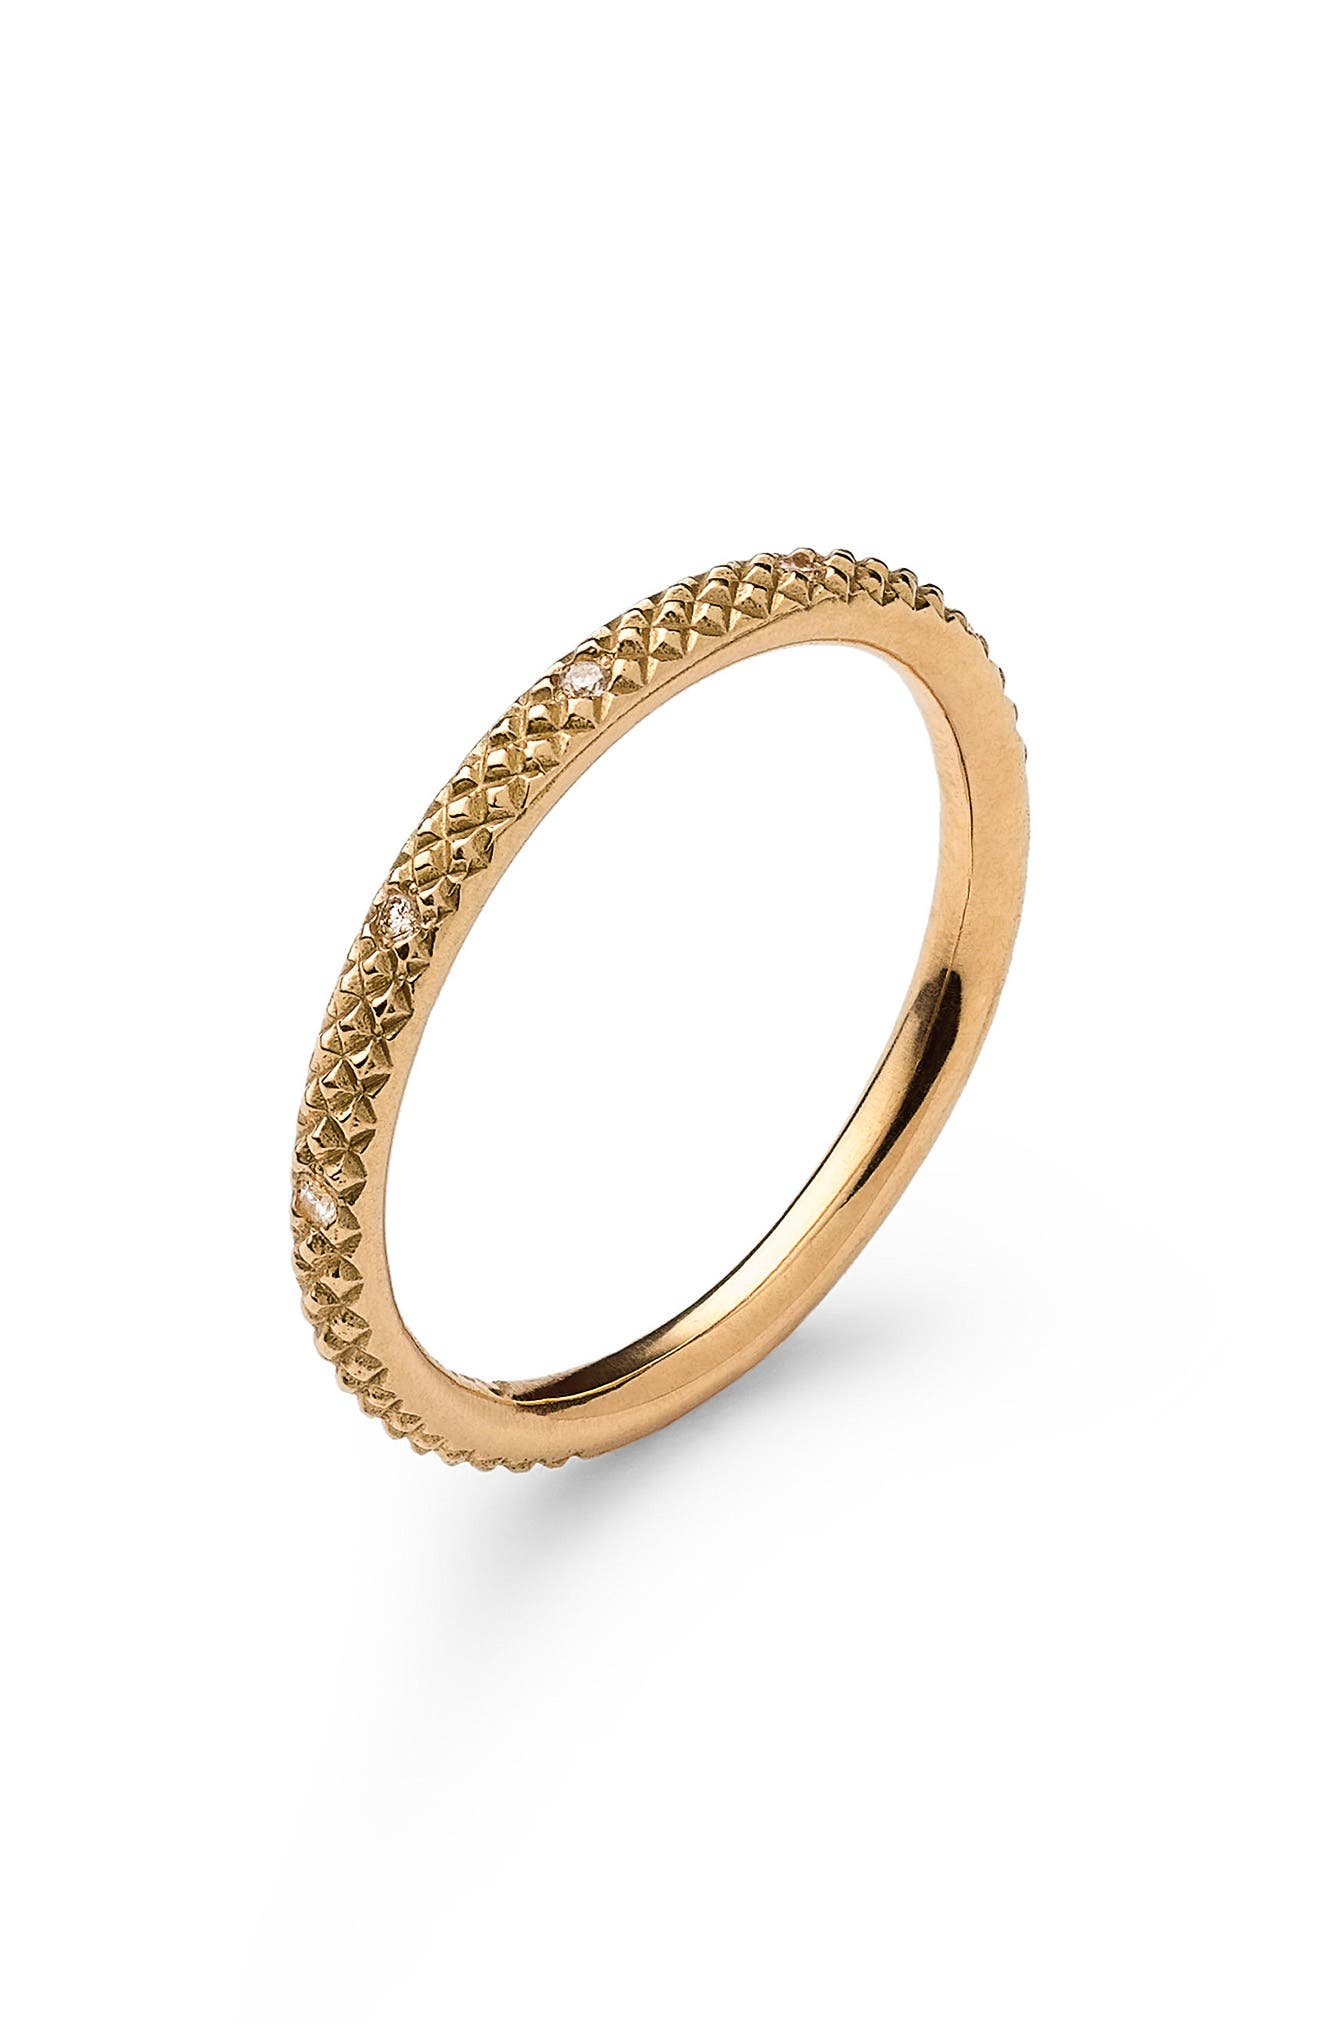 Miss Evie Diamond Ring,                         Main,                         color, YELLOW GOLD